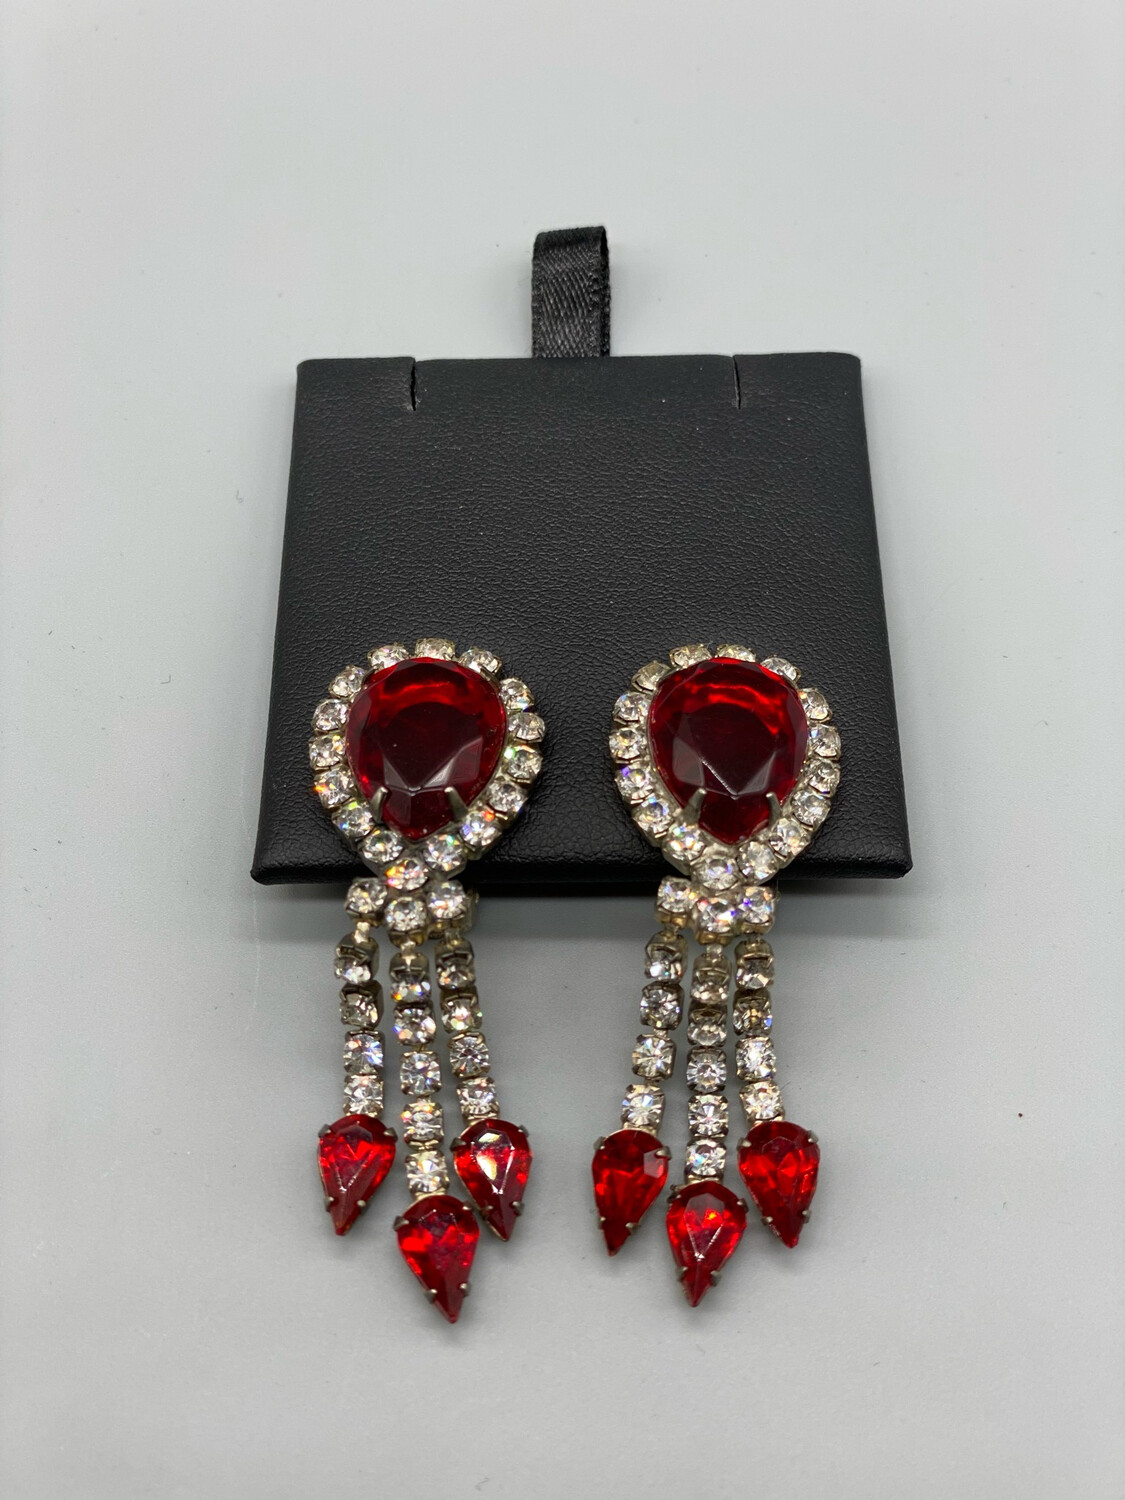 Vintage Clip-On Red And White Earrings